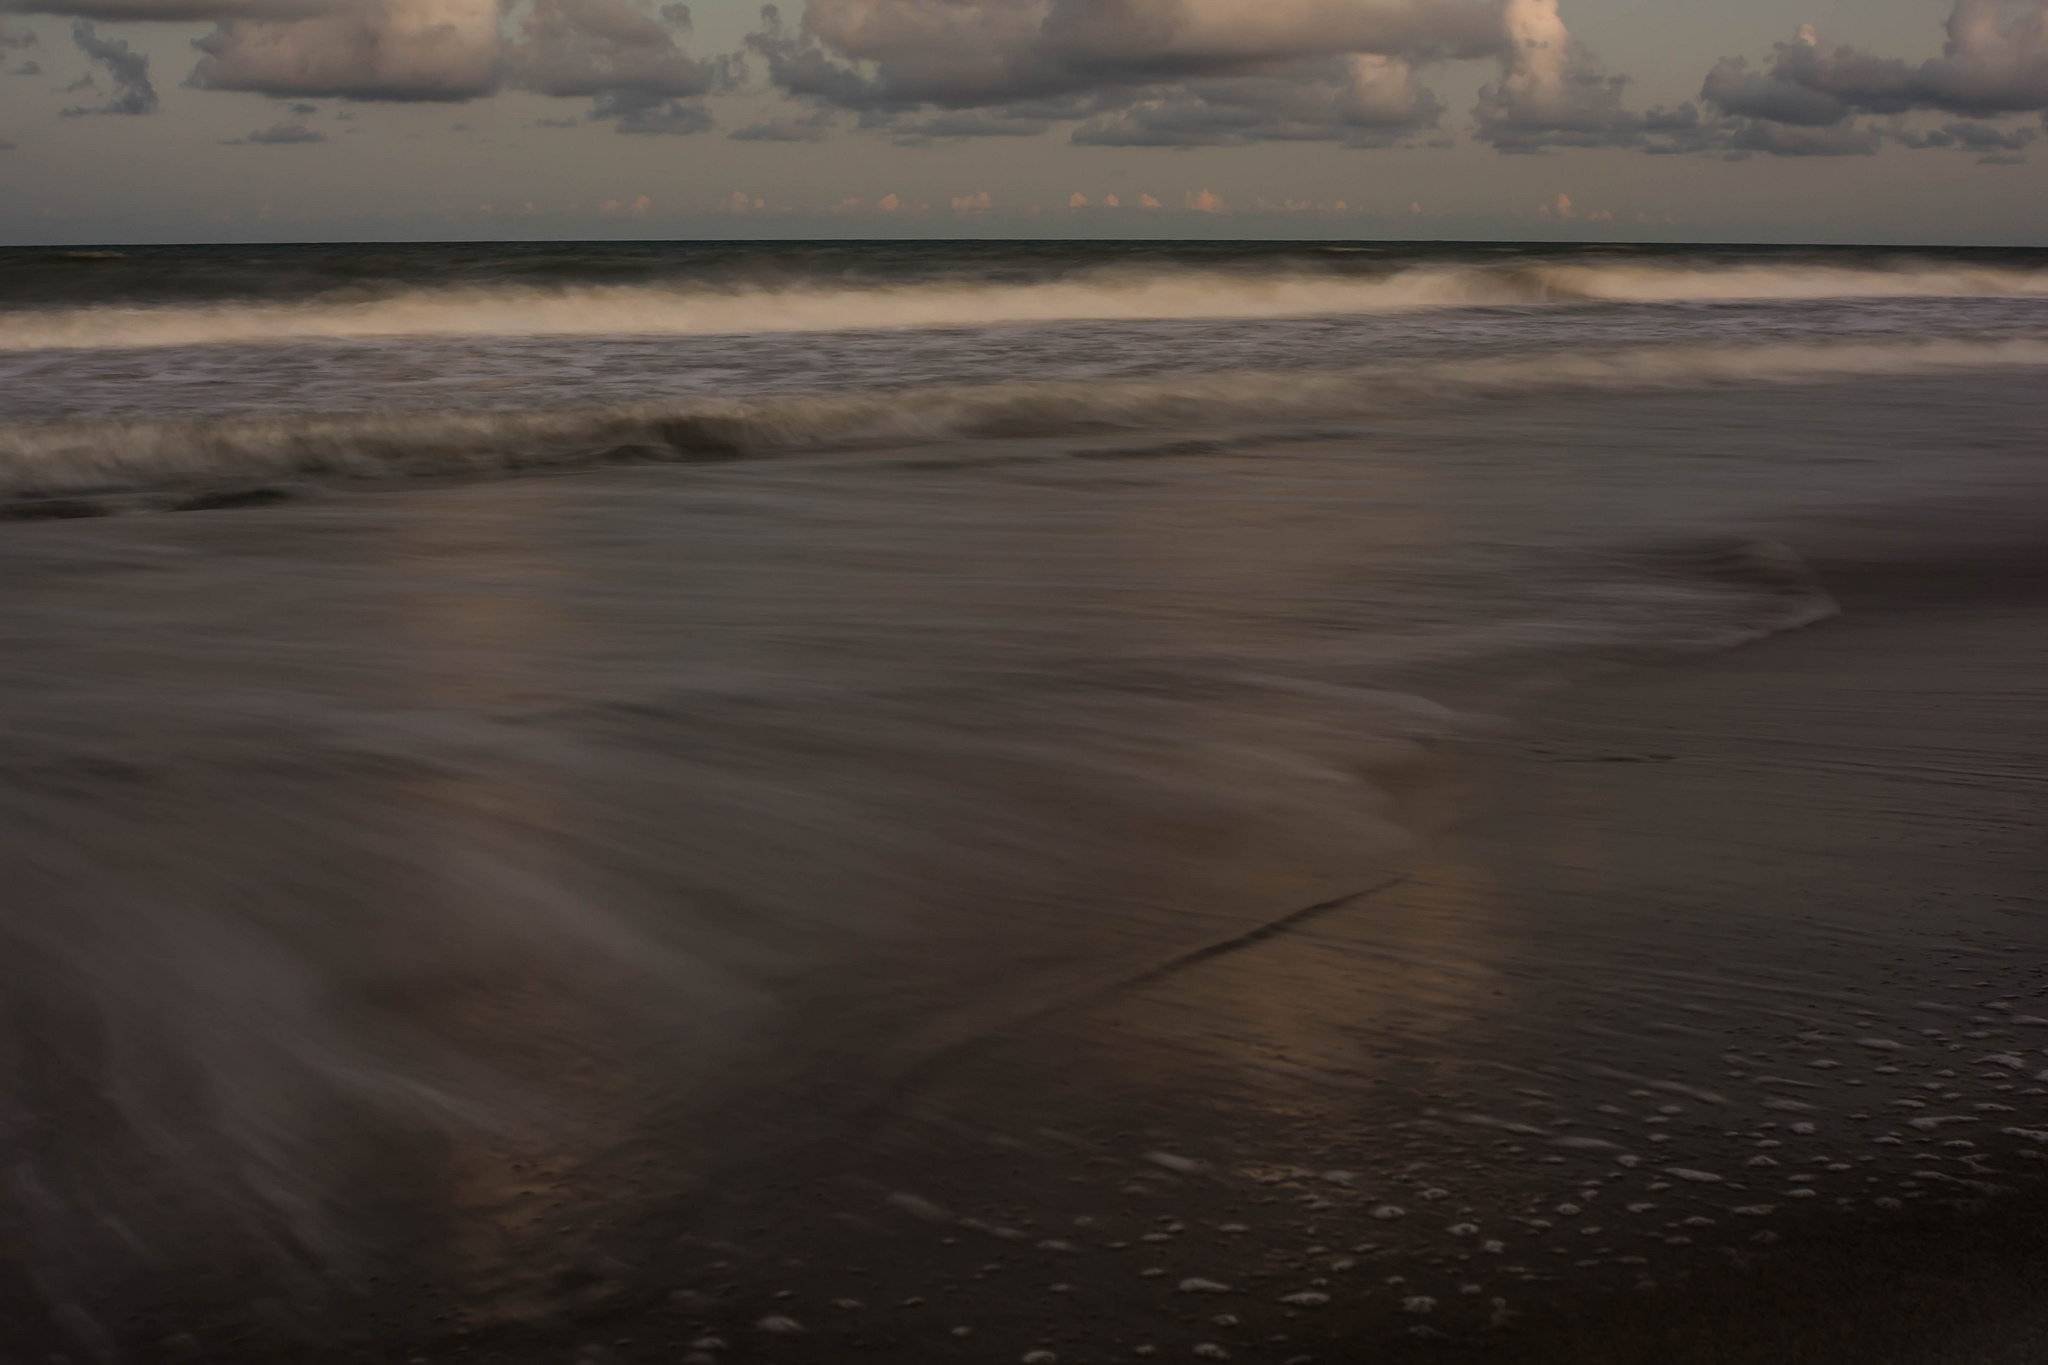 Florida Beach © Spencer Harris/flickr